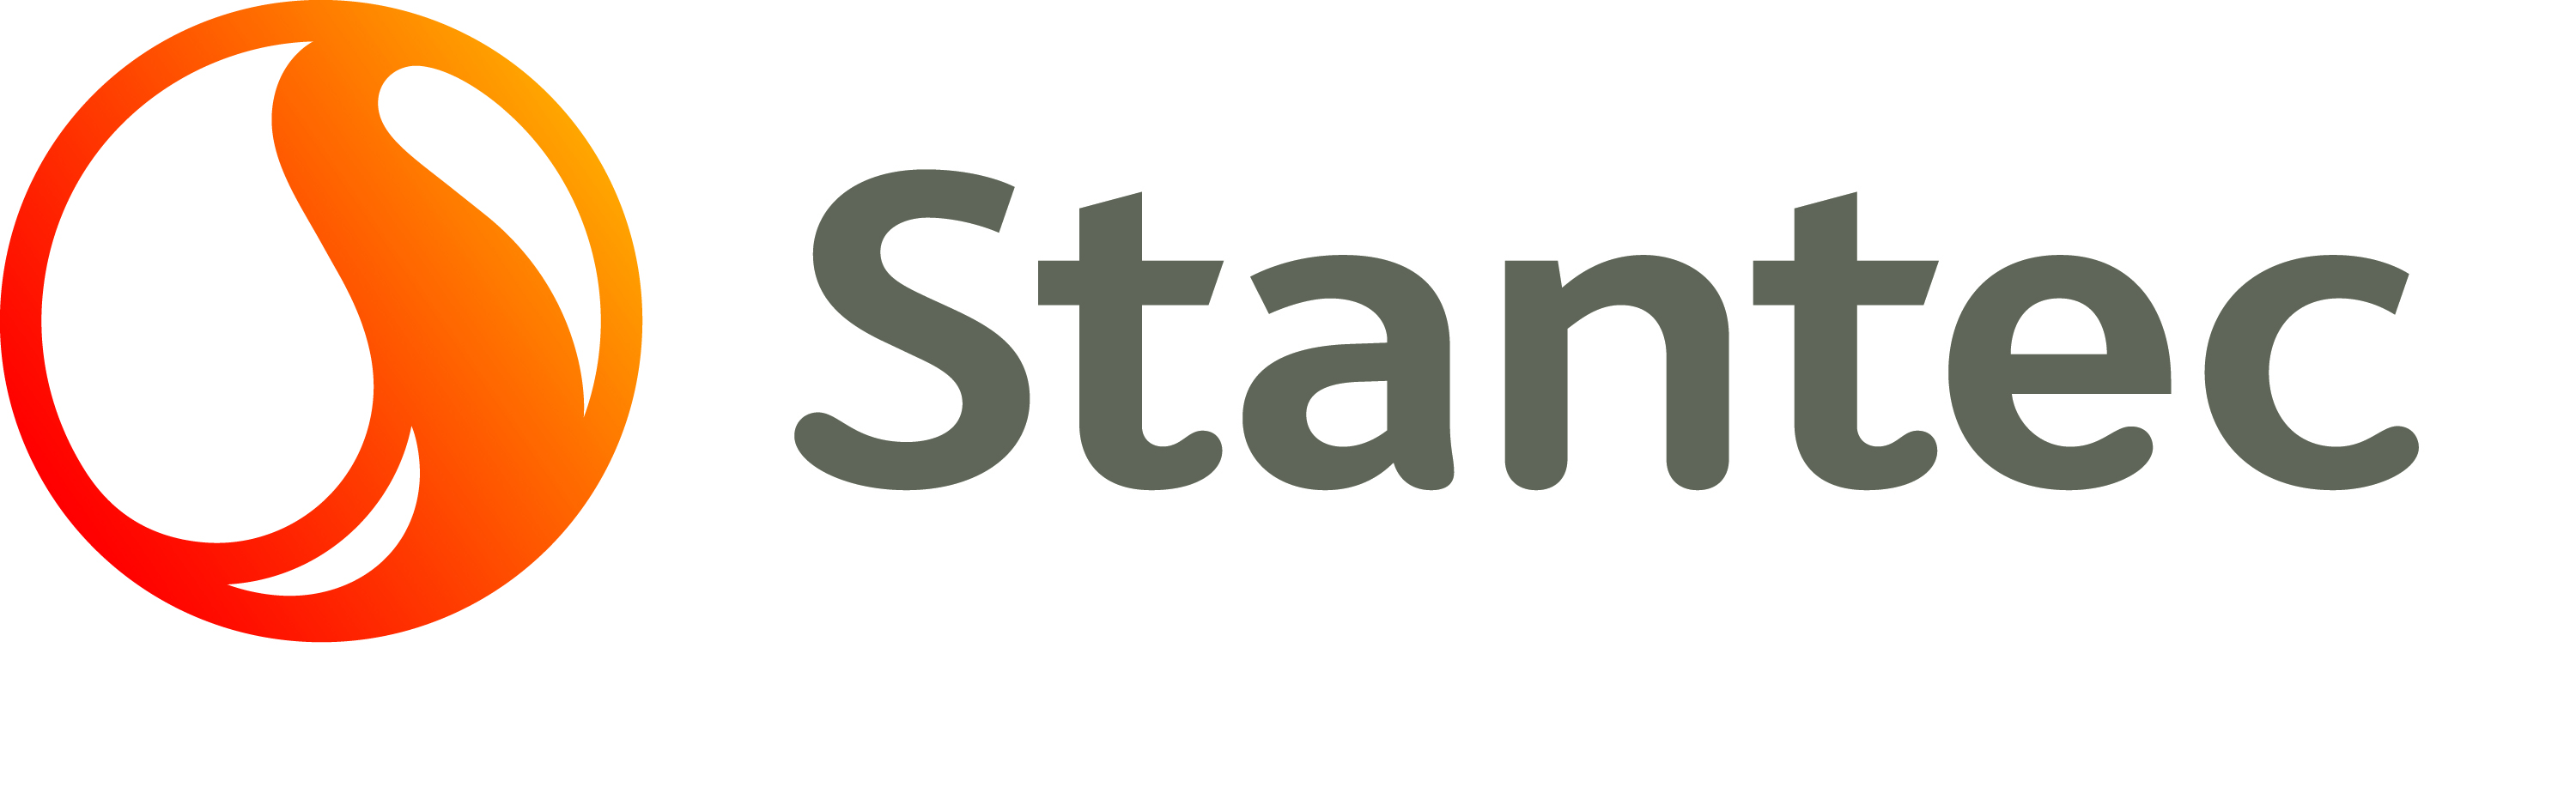 2018 WiA Conference - Stantec logo